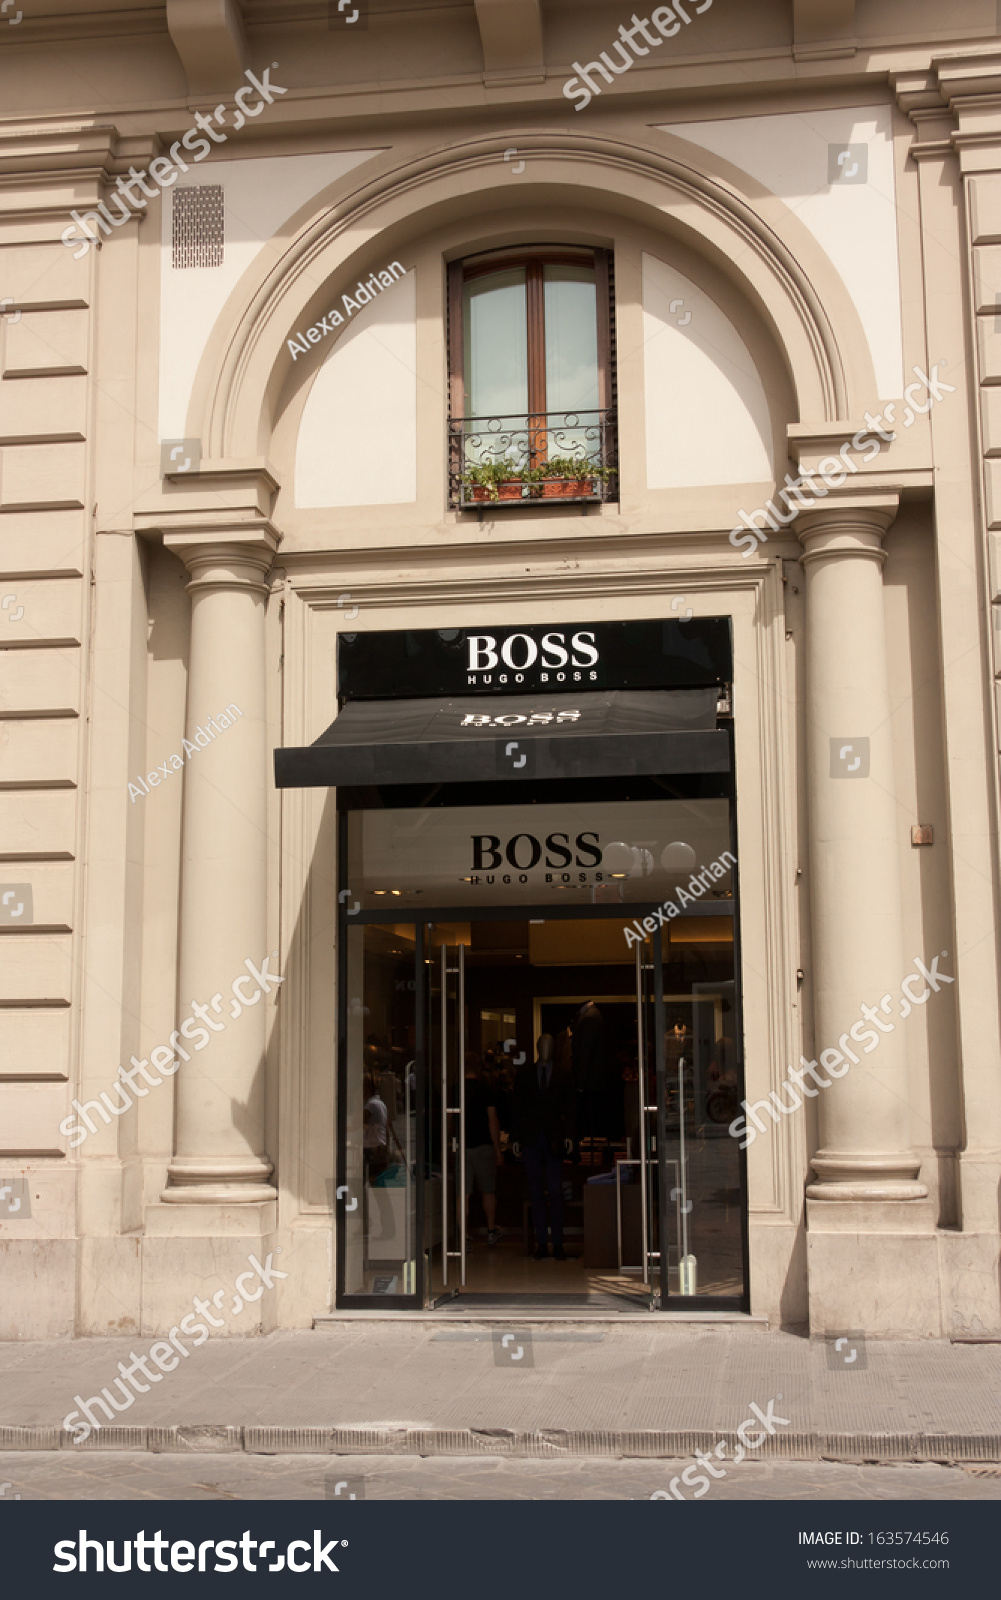 Florence Italy June 22 2013 Hugo Boss Boutique At Piazza Della Repubblica Hugo Boss Ag Is